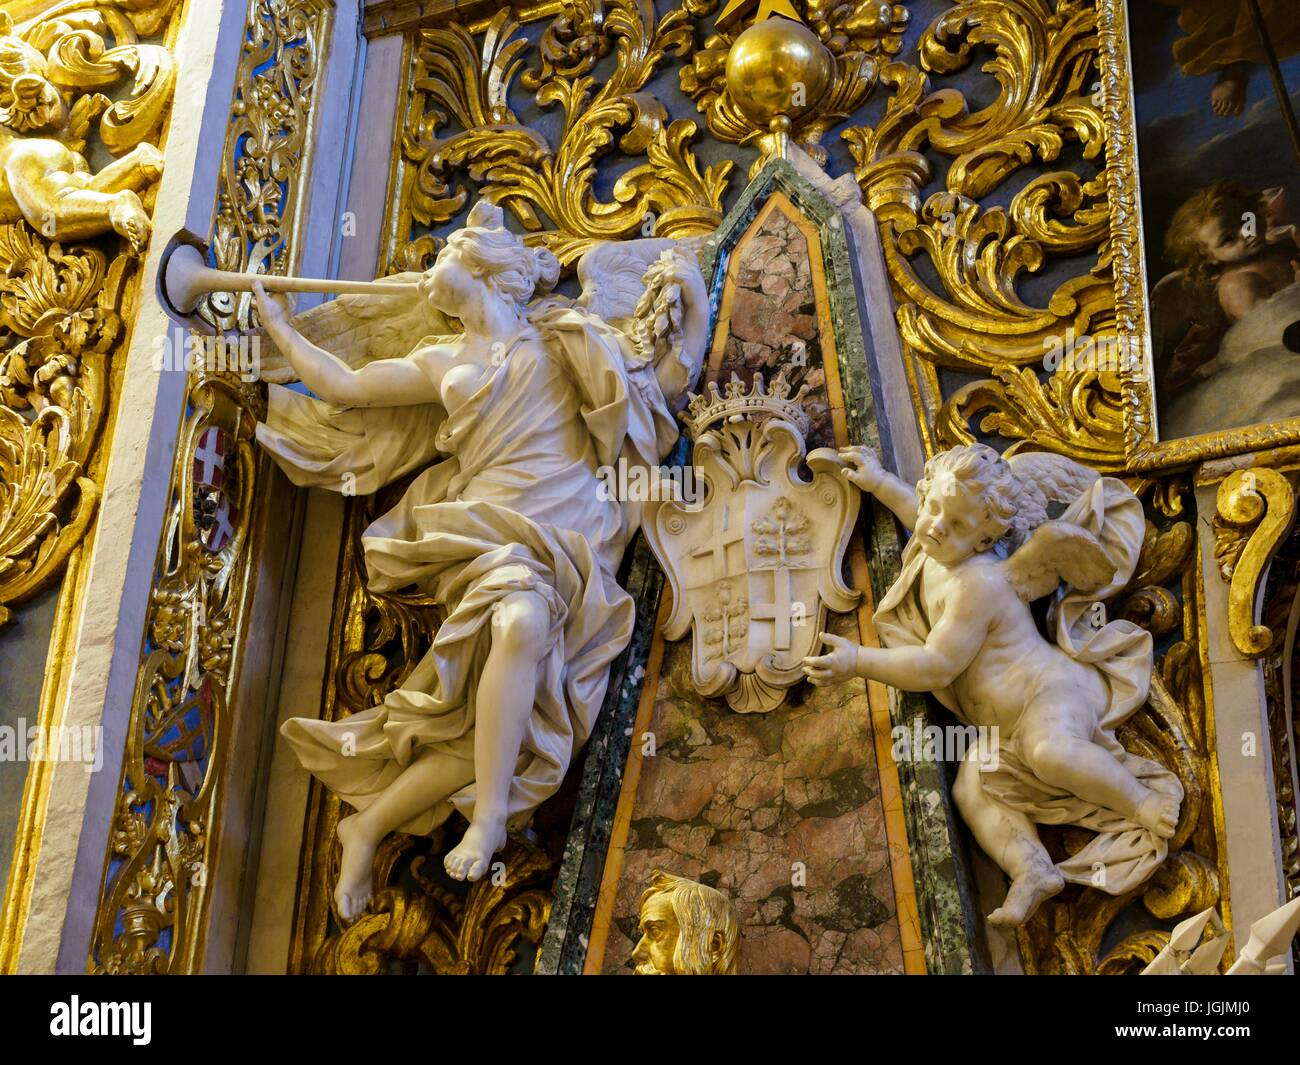 A detail inside St. John's Co-Cathedral at the capital Valletta / Malta. - Stock Image